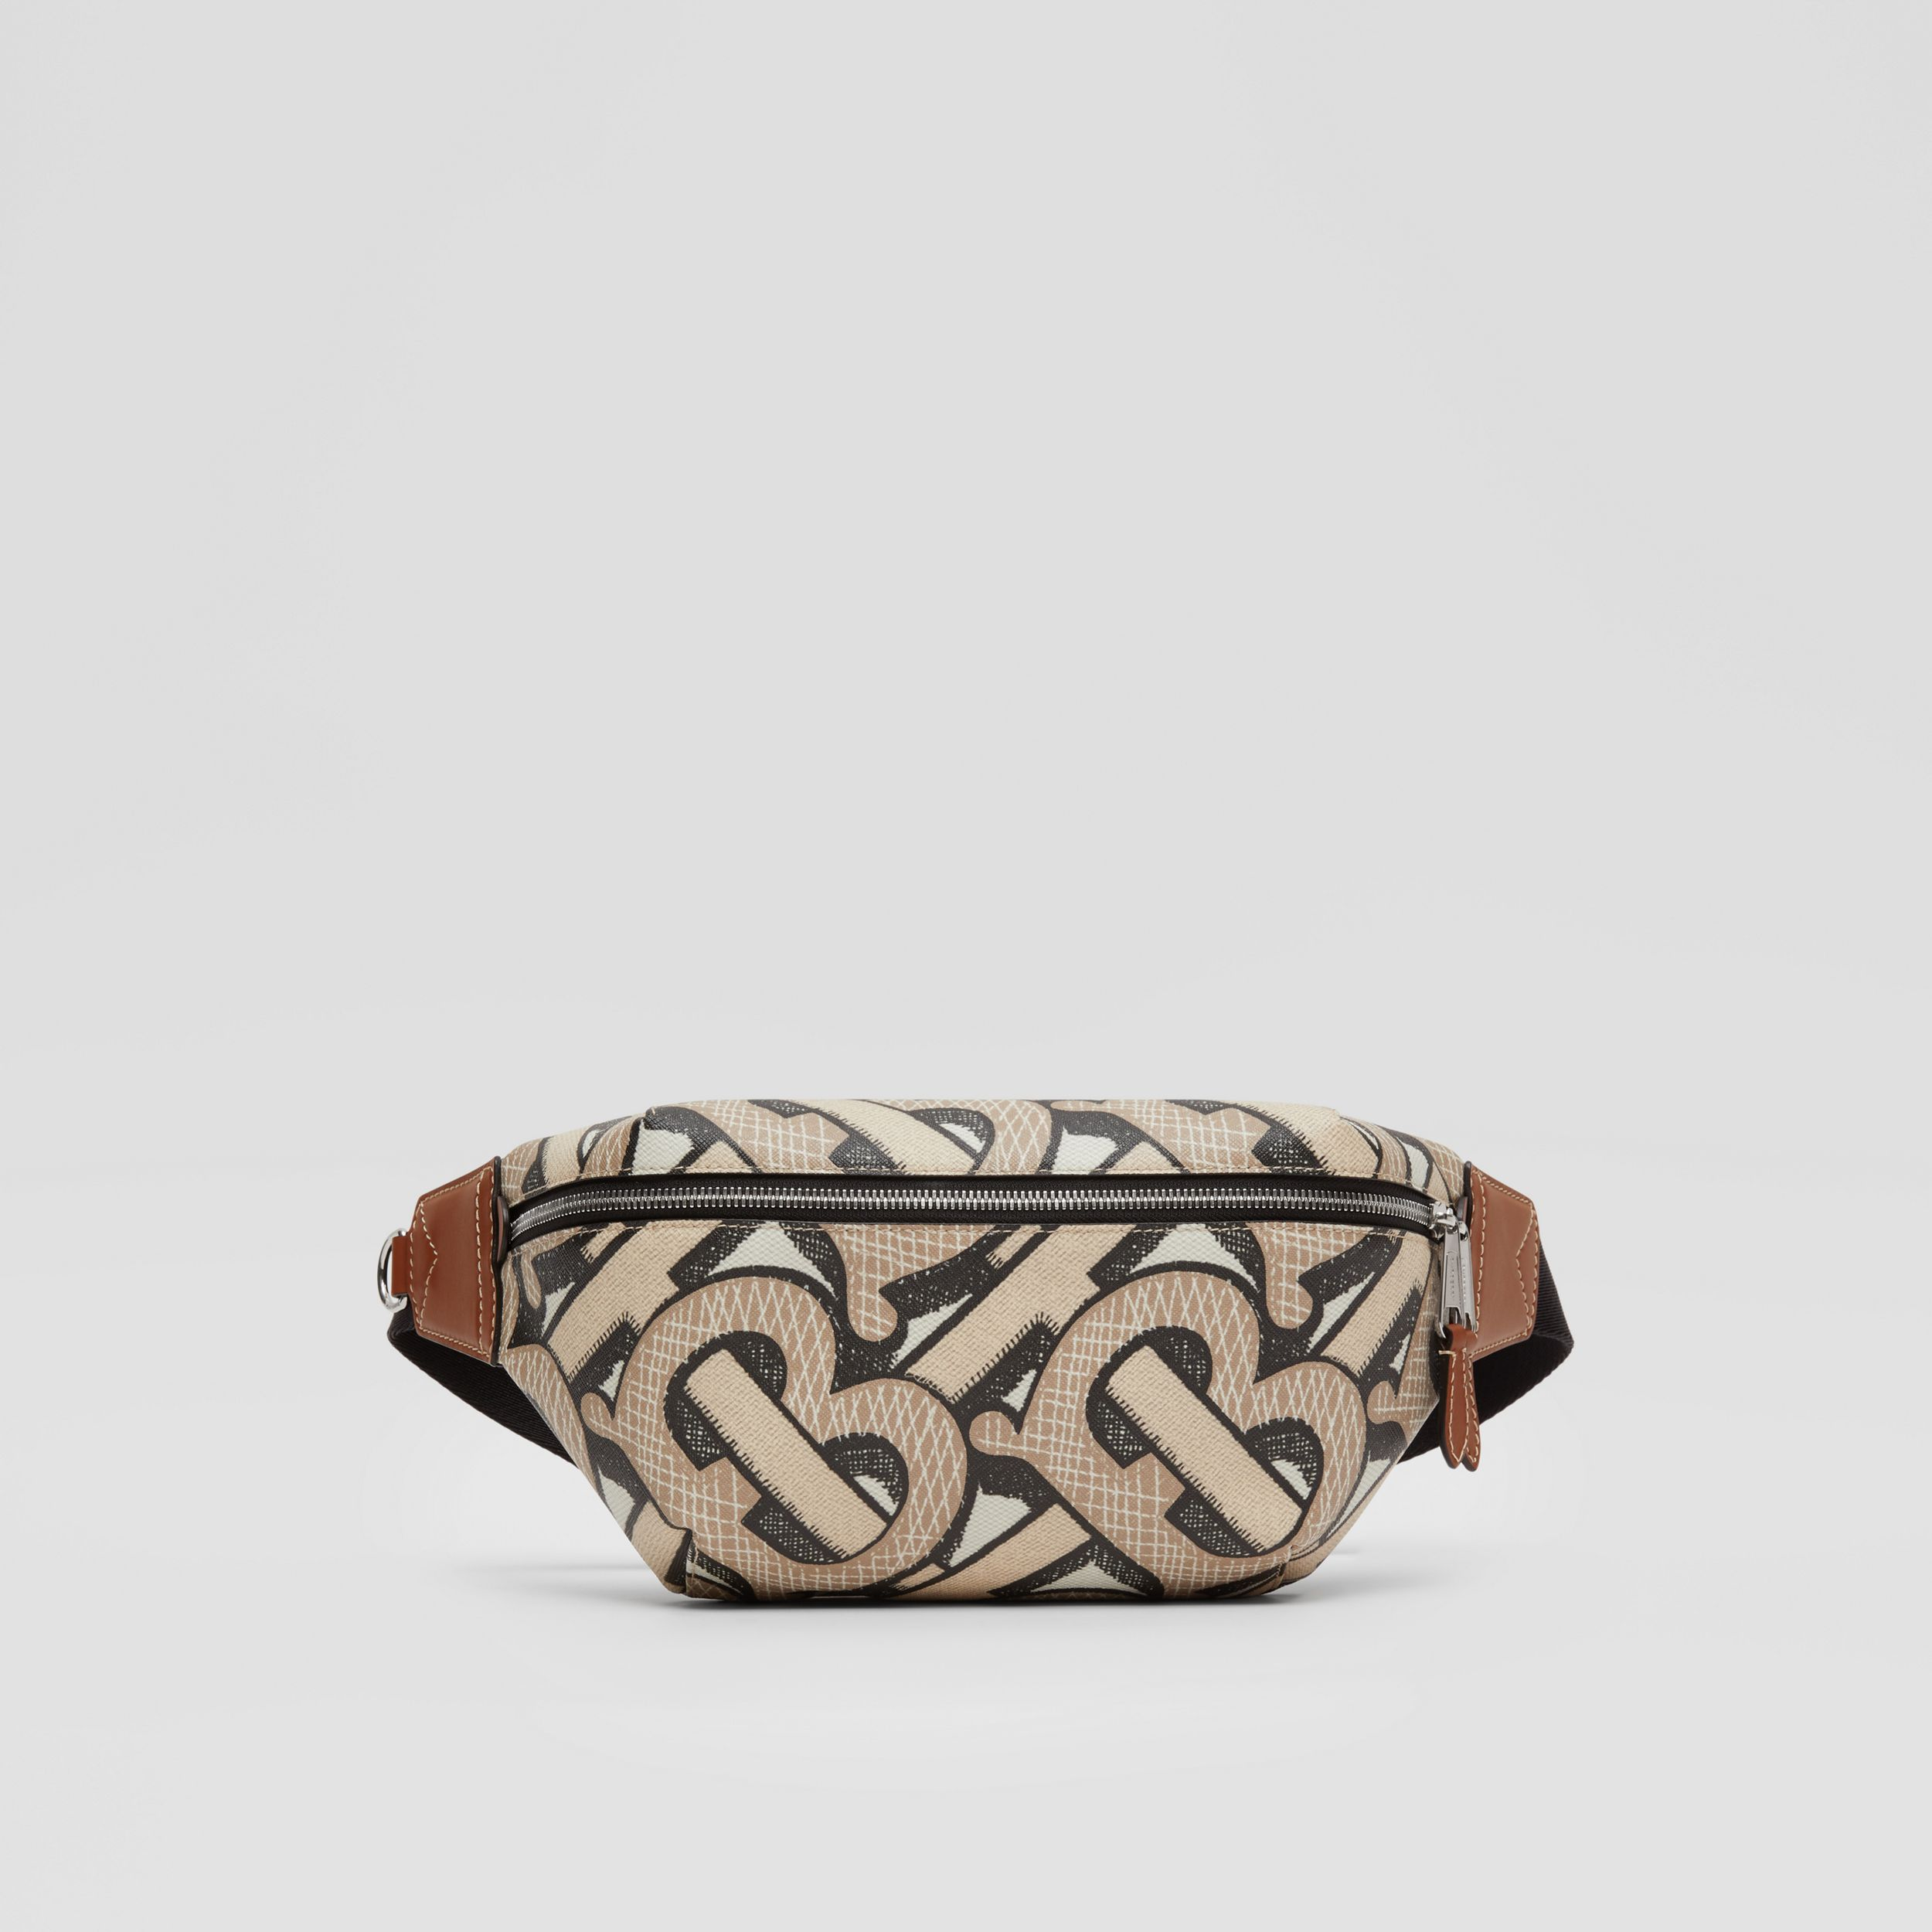 Monogram Print E-canvas Sonny Bum Bag in Dark Beige | Burberry - 1